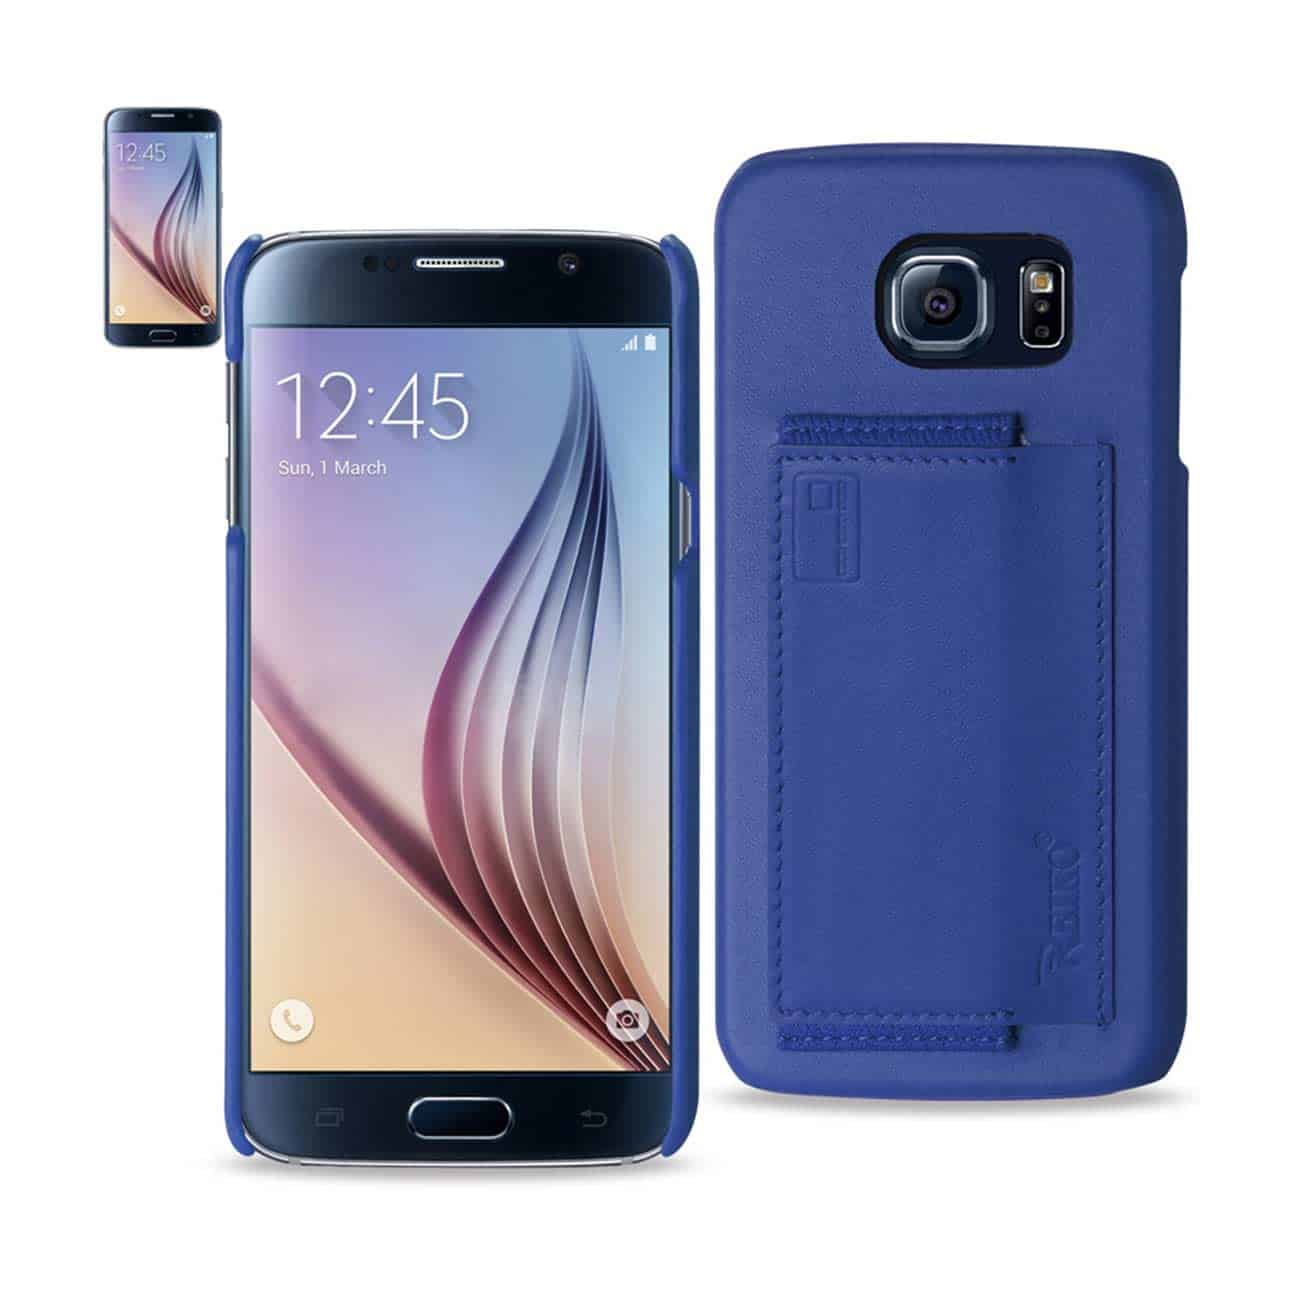 SAMSUNG GALAXY S6 RFID GENUINE LEATHER CASE PROTECTION AND KEY HOLDER IN ULTRAMARINE